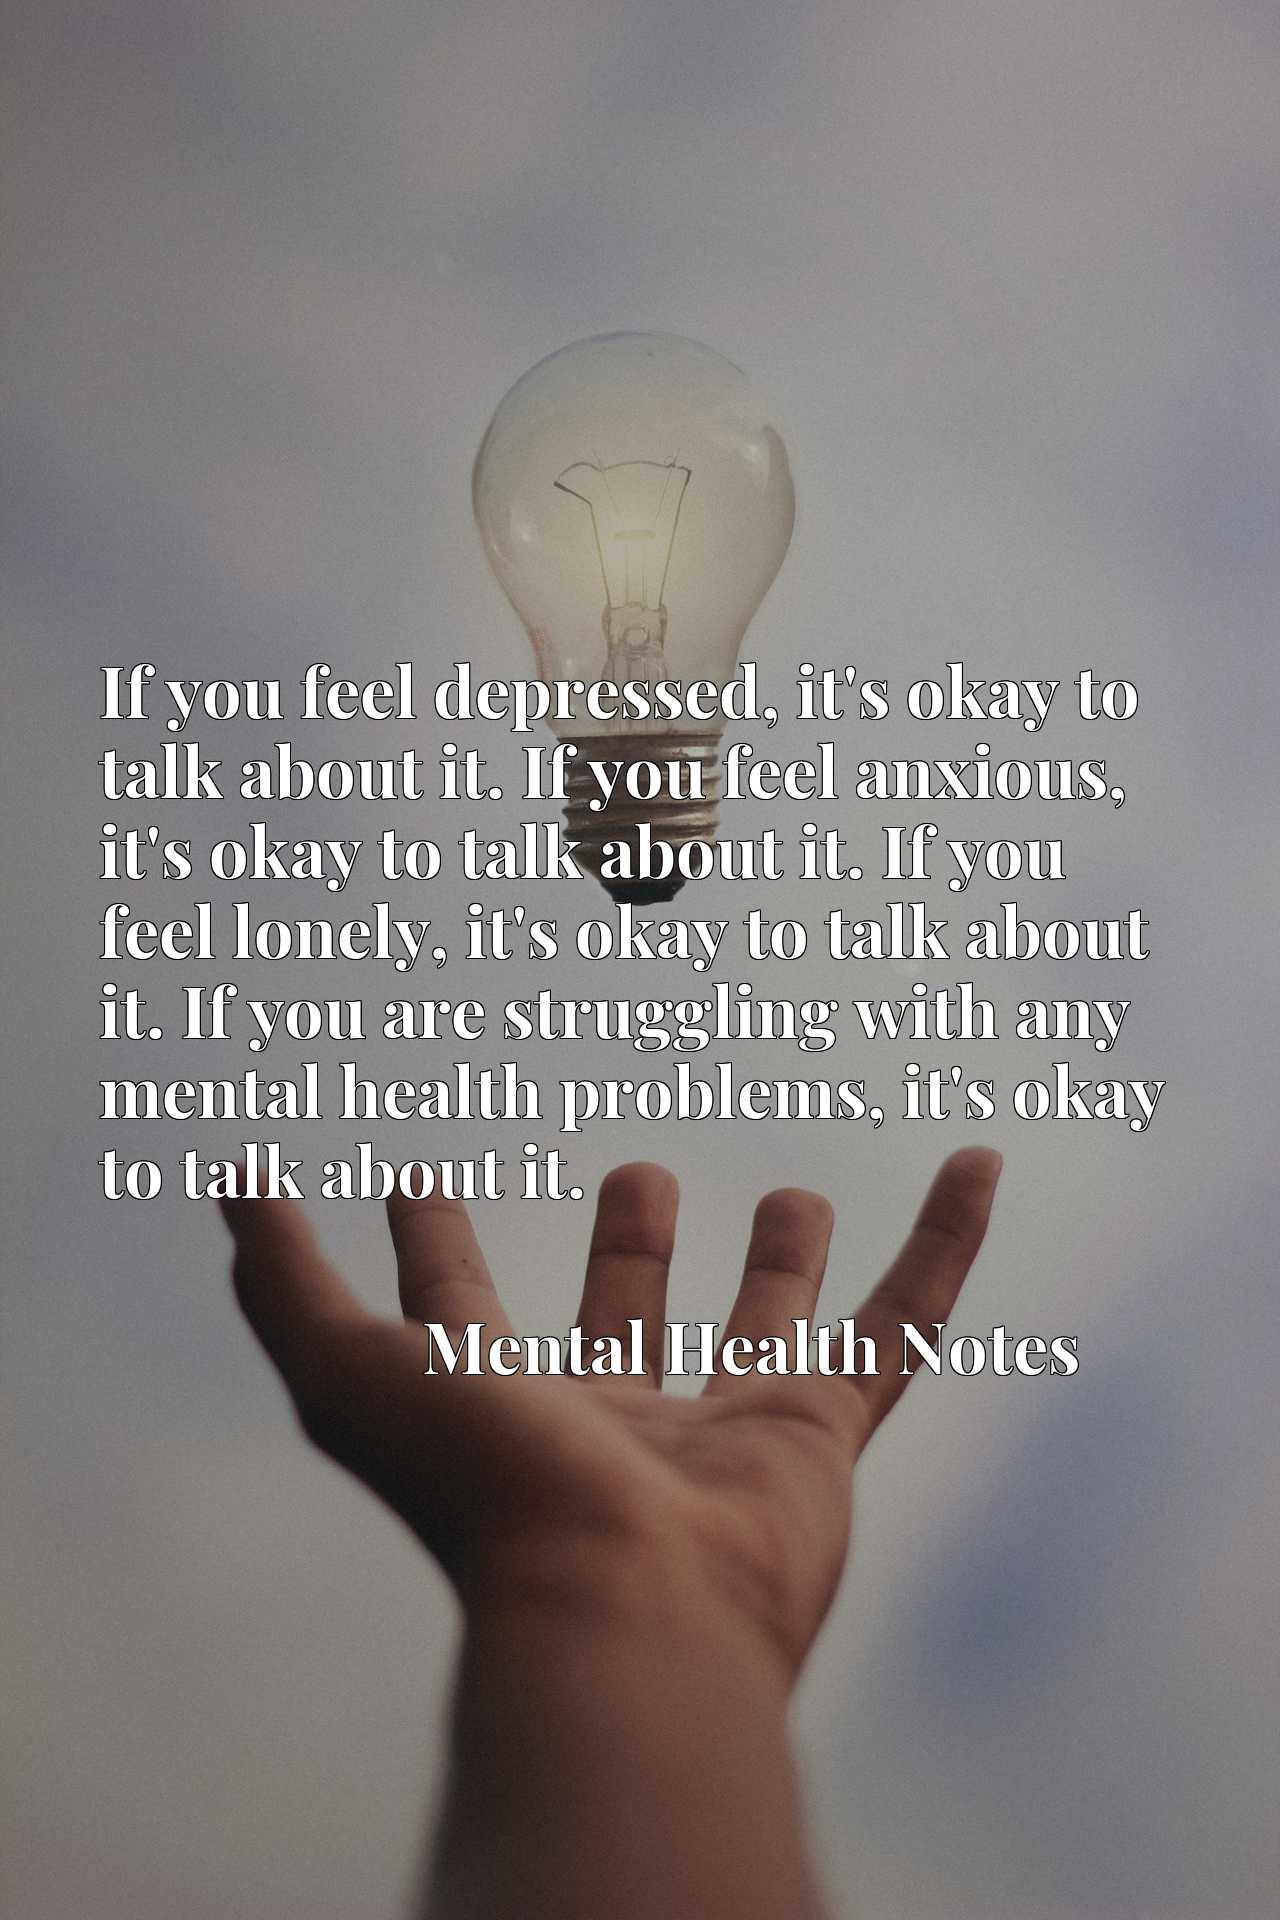 If you feel depressed, it's okay to talk about it. If you feel anxious, it's okay to talk about it. If you feel lonely, it's okay to talk about it. If you are struggling with any mental health problems, it's okay to talk about it.